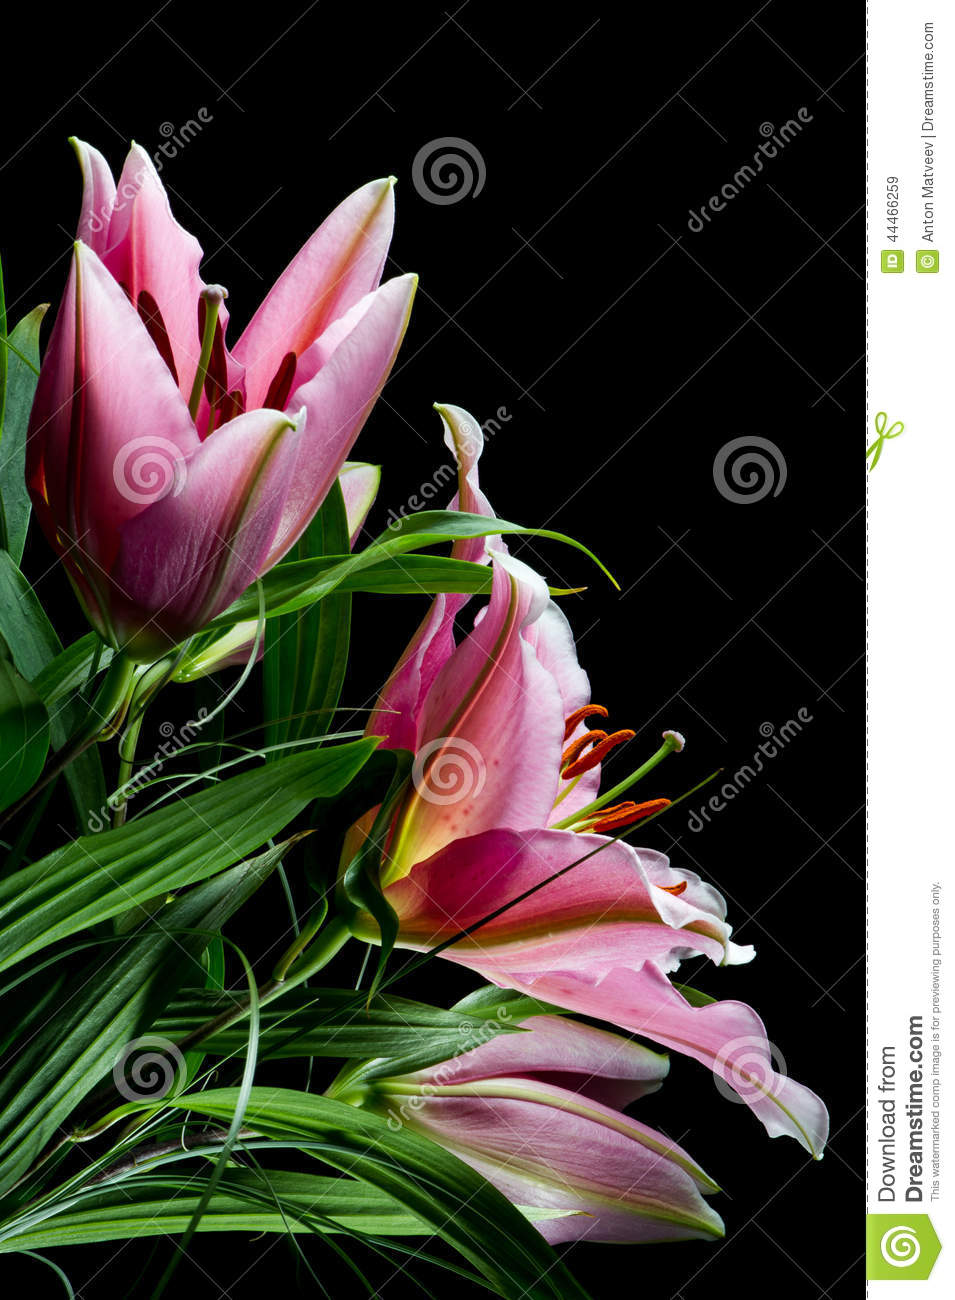 Bouquet Of Lilies Stock Image Image Of Flowers Leaf 44466259